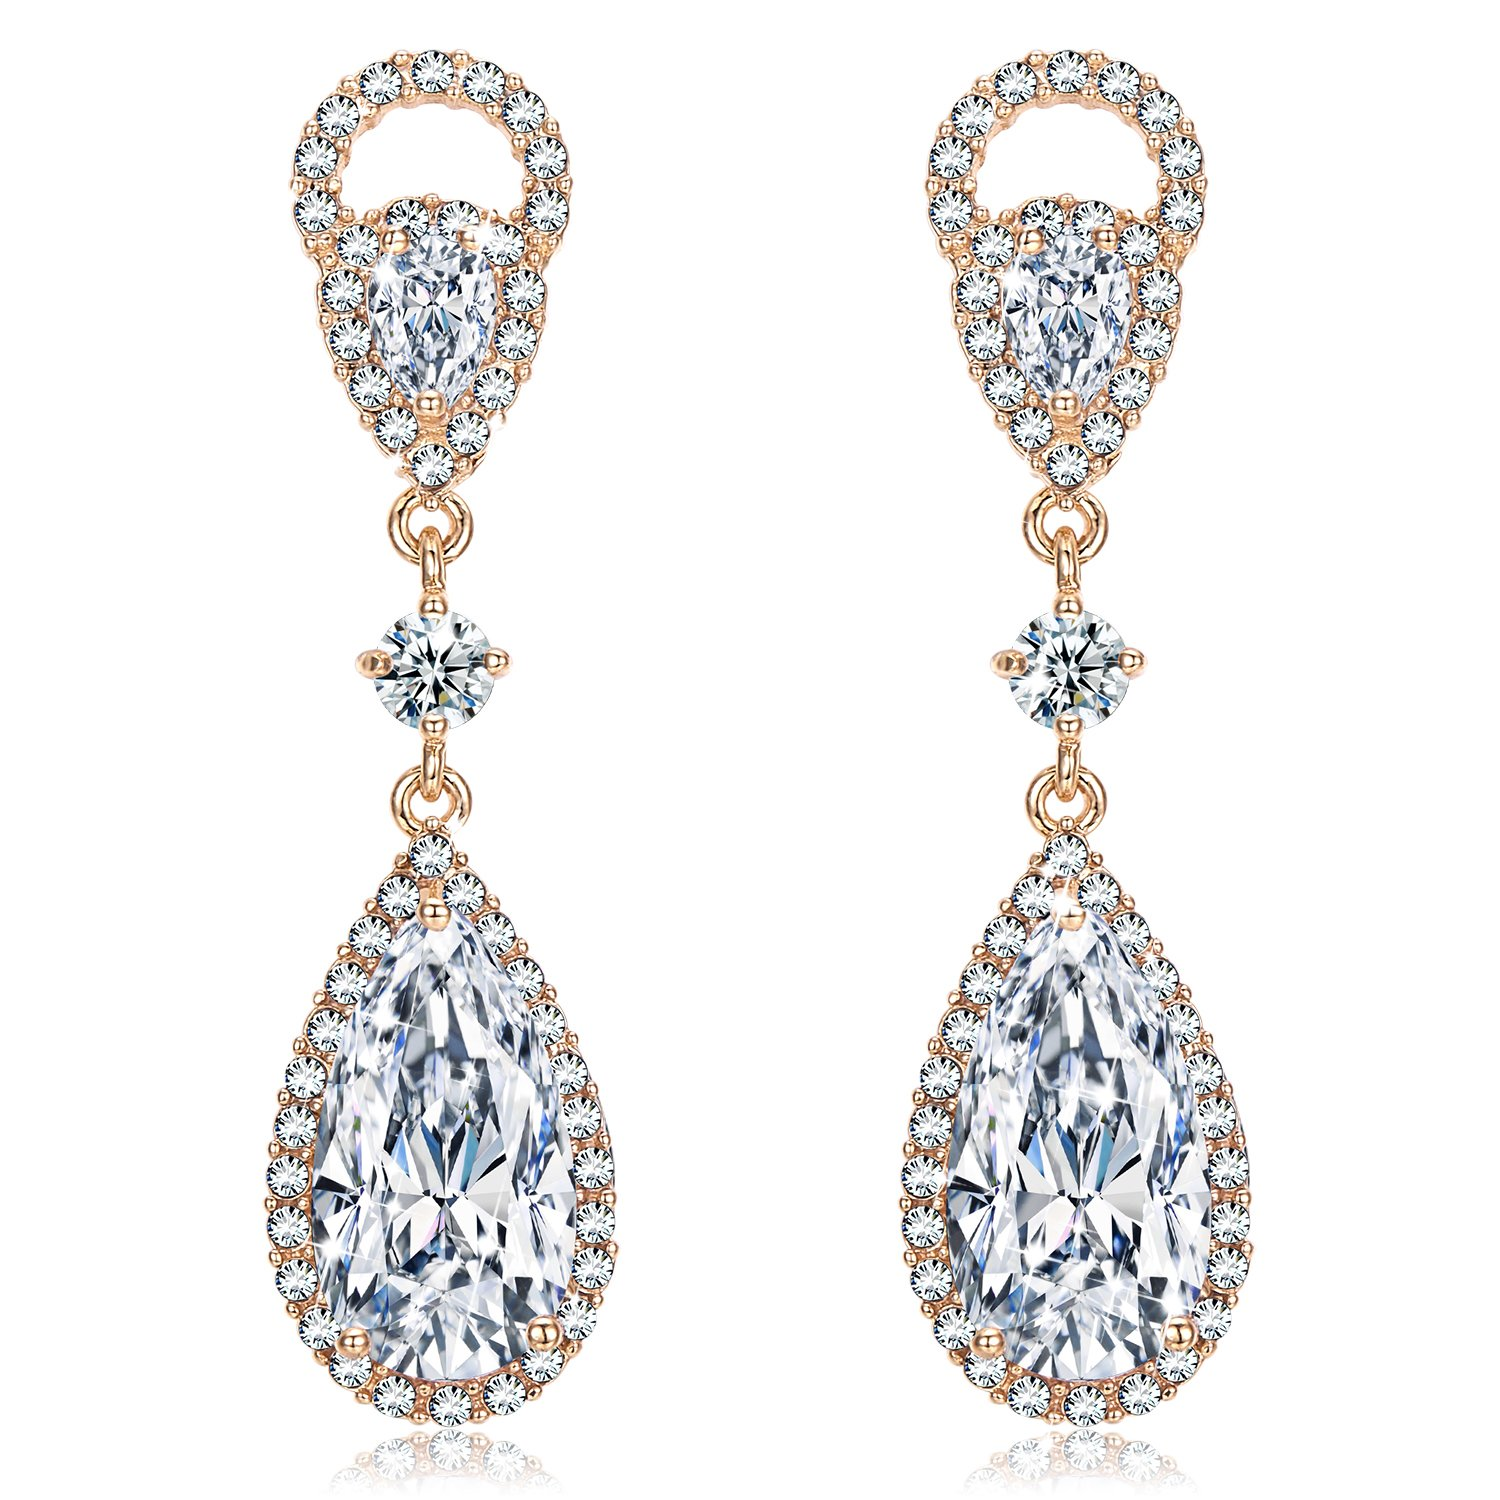 Incaton Wedding Crystal Earrings with Pearl Extended Best Christmas Gifts for Bridal and Women